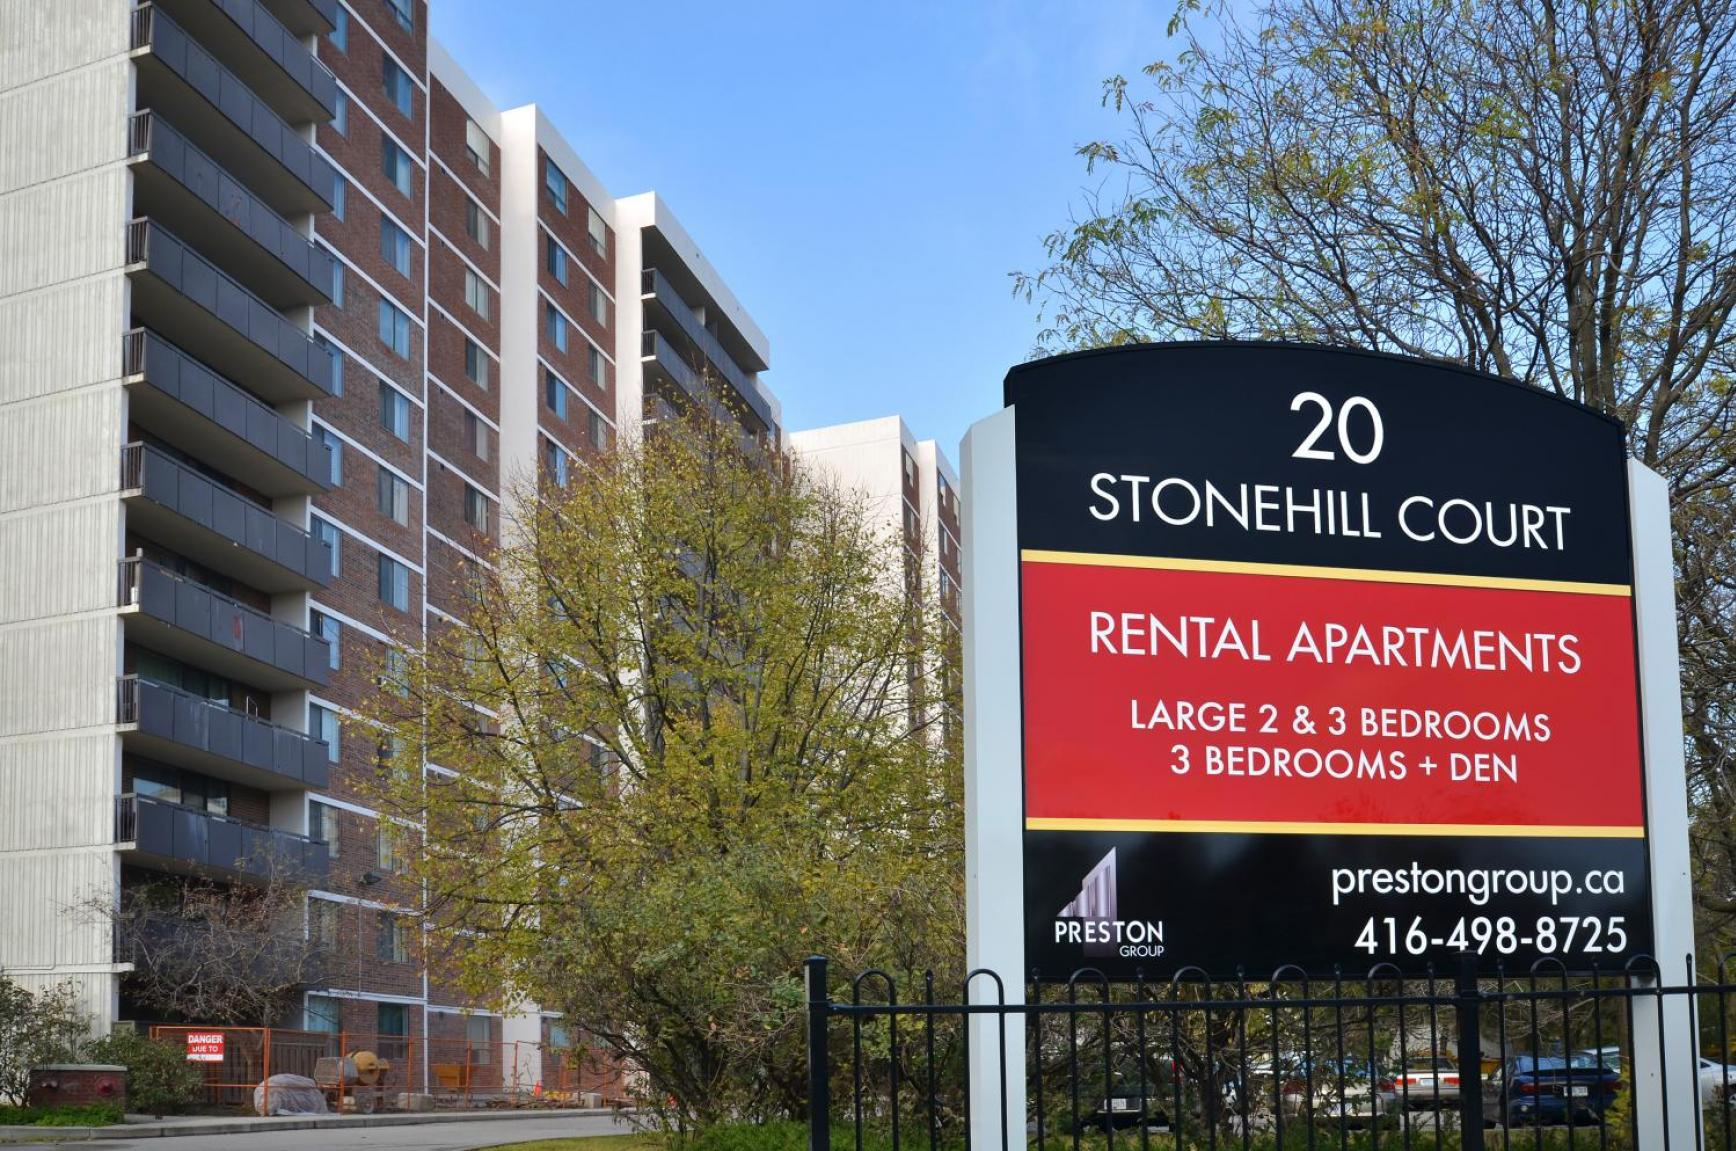 20 Stonehill Court in Toronto, ON